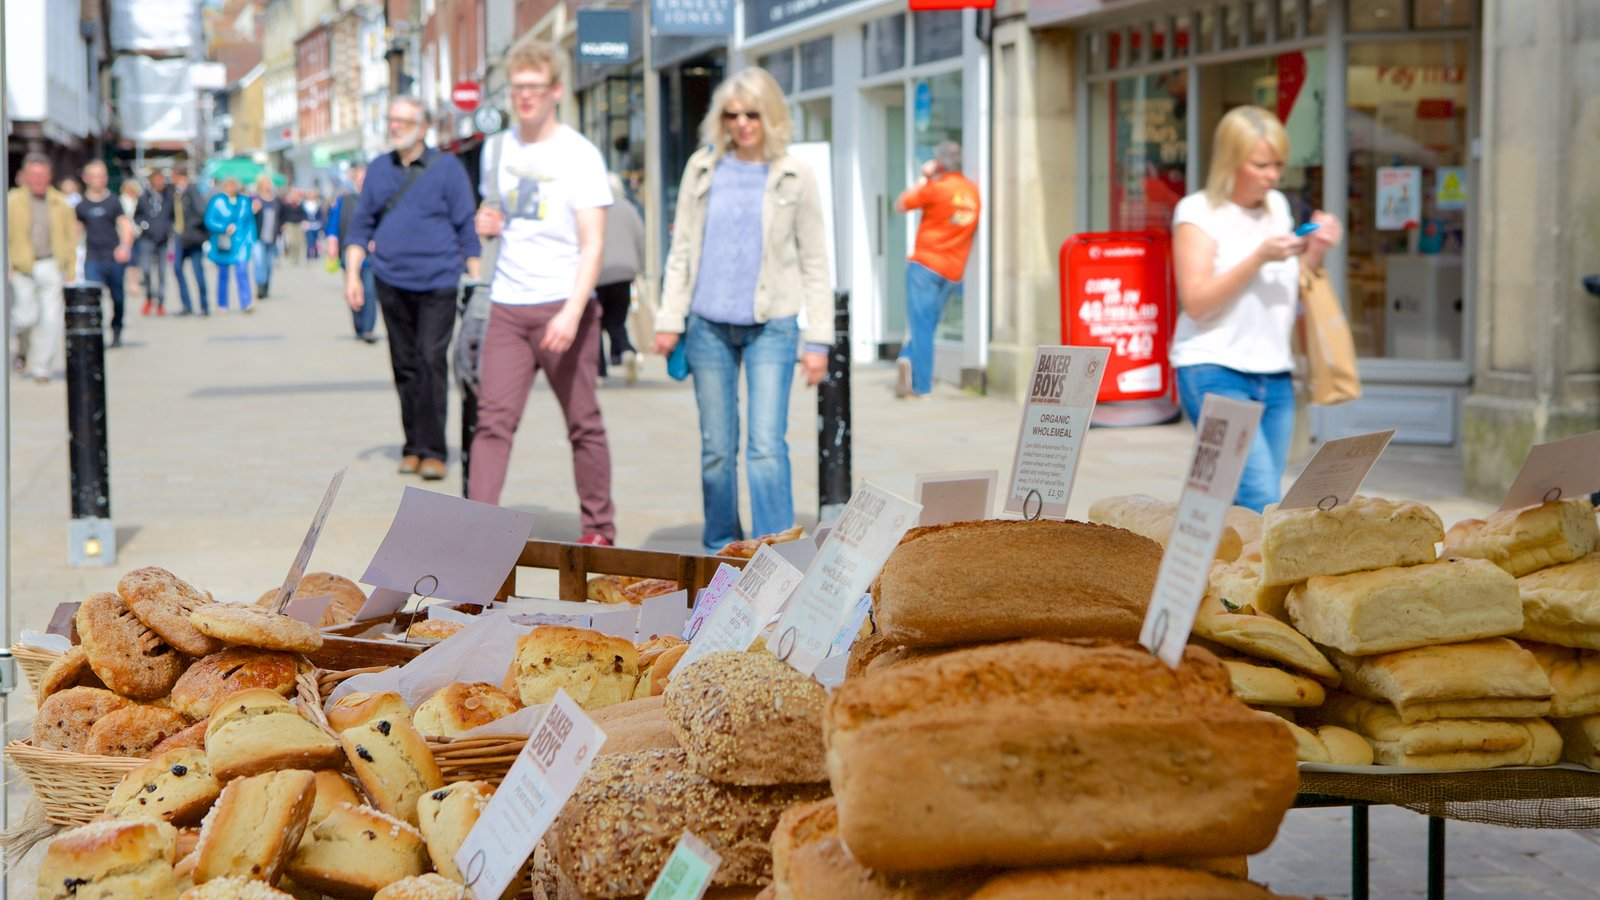 Winchester which includes food as well as a small group of people